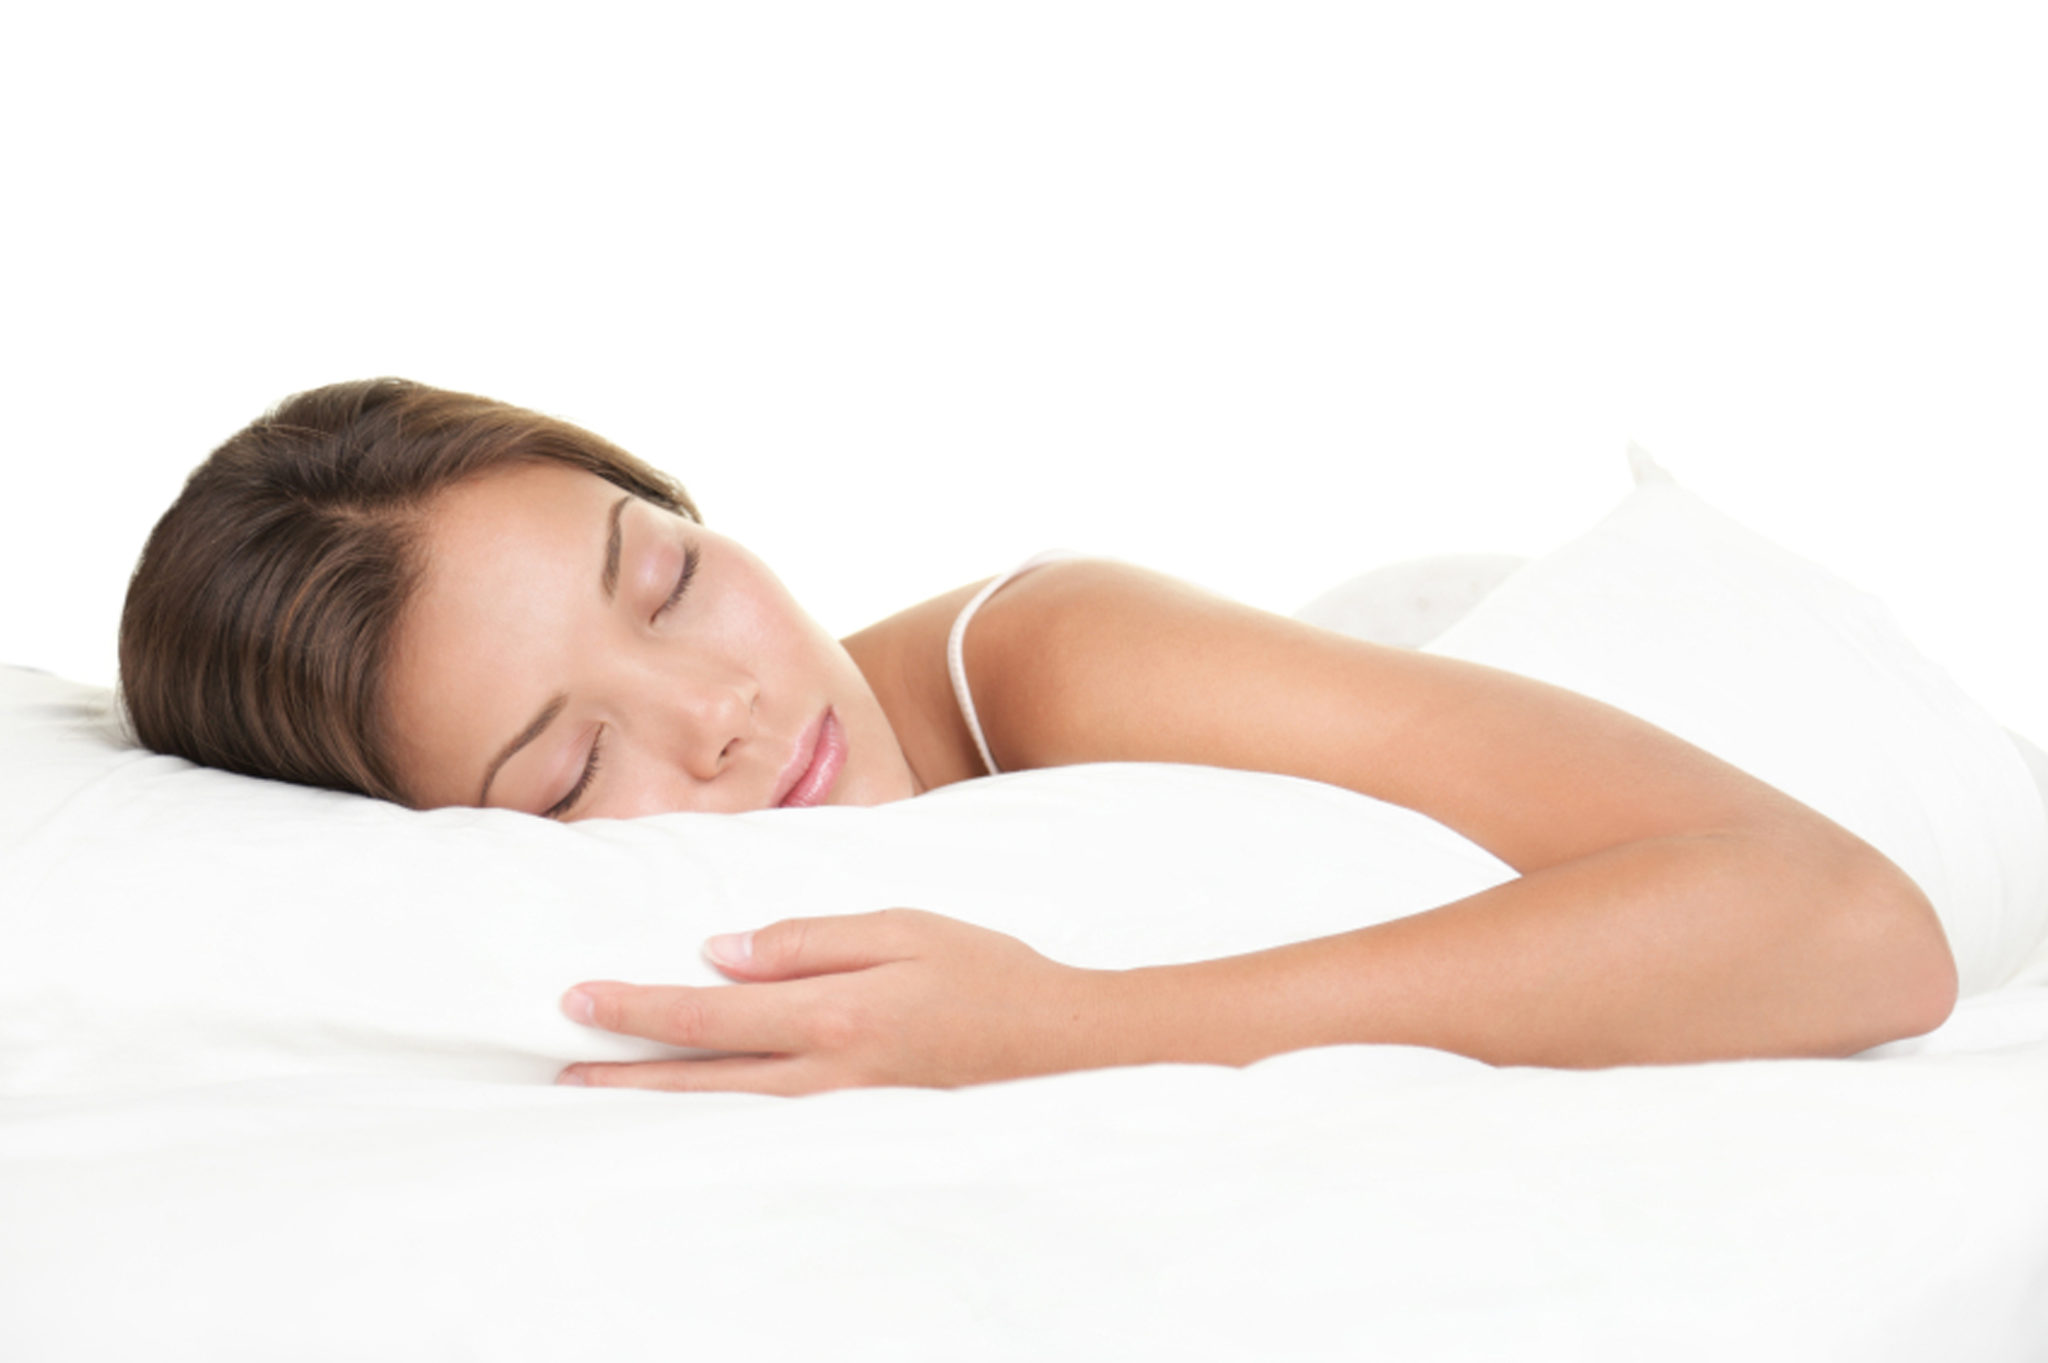 Woman sleeping in bed. Woman sleeping isolated on white background.